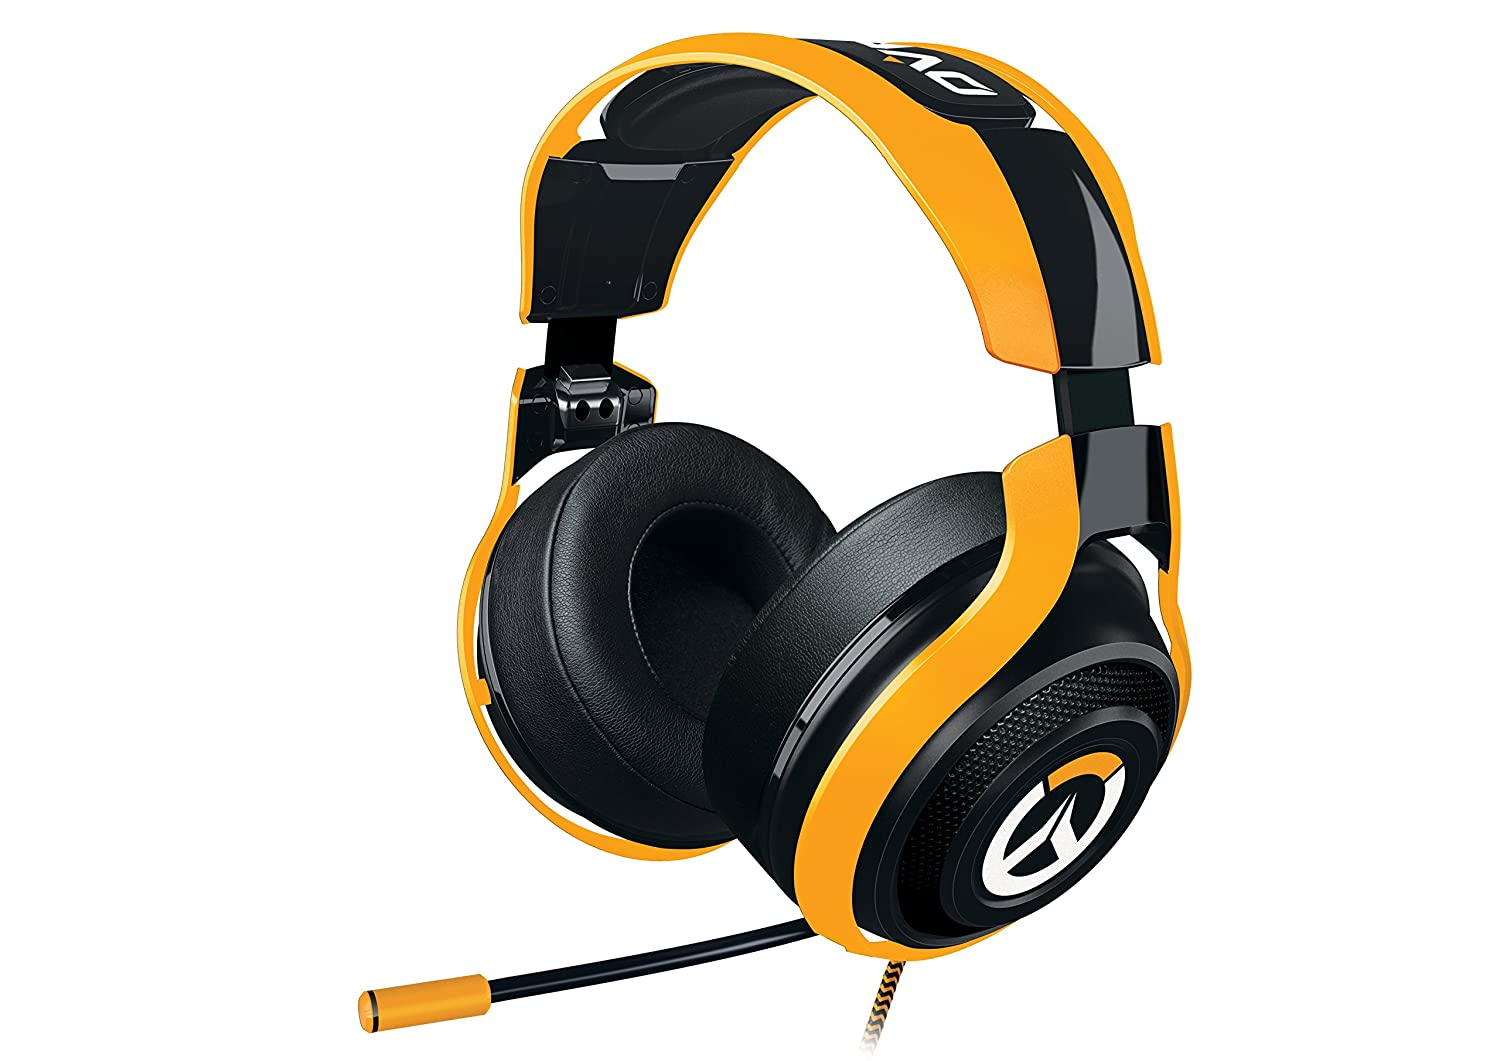 Razer Overwatch ManO'War Tournament Edition: In-Line Audio Control -  Unidirectional Retractable Mic - Rotating Ear Cups - Gaming Headset Works  with